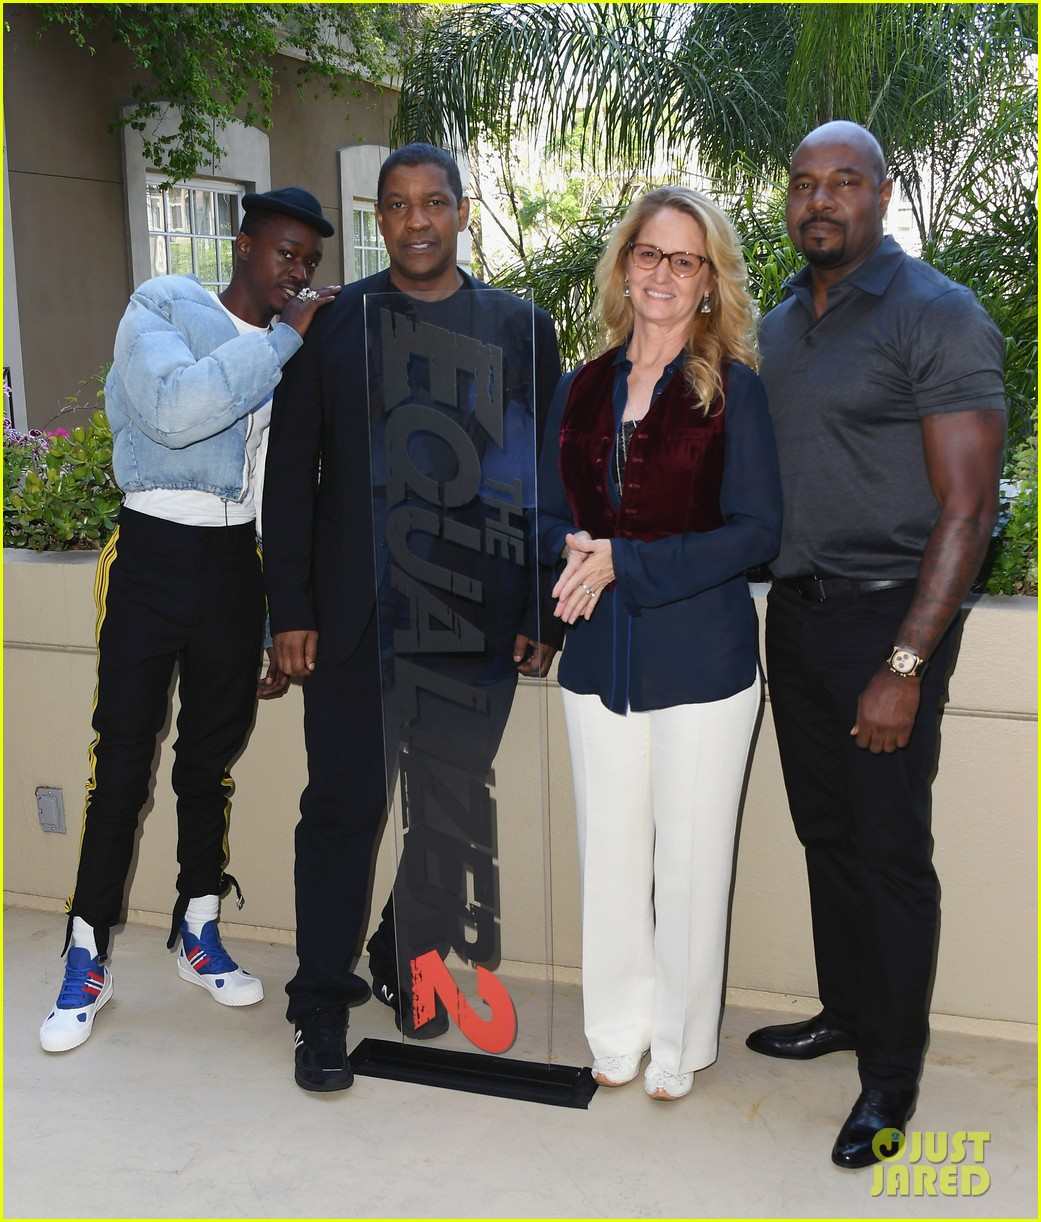 Denzel Washington Promotes 'The Equalizer 2' in LA!: Photo